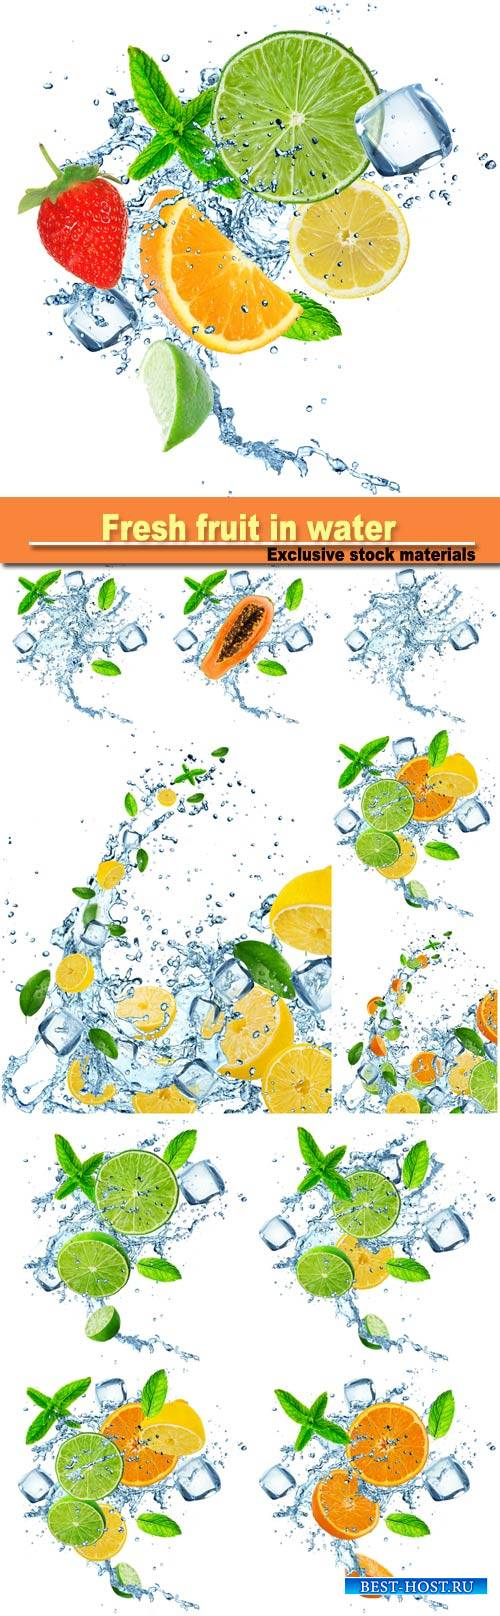 Fresh fruit in water splash over white